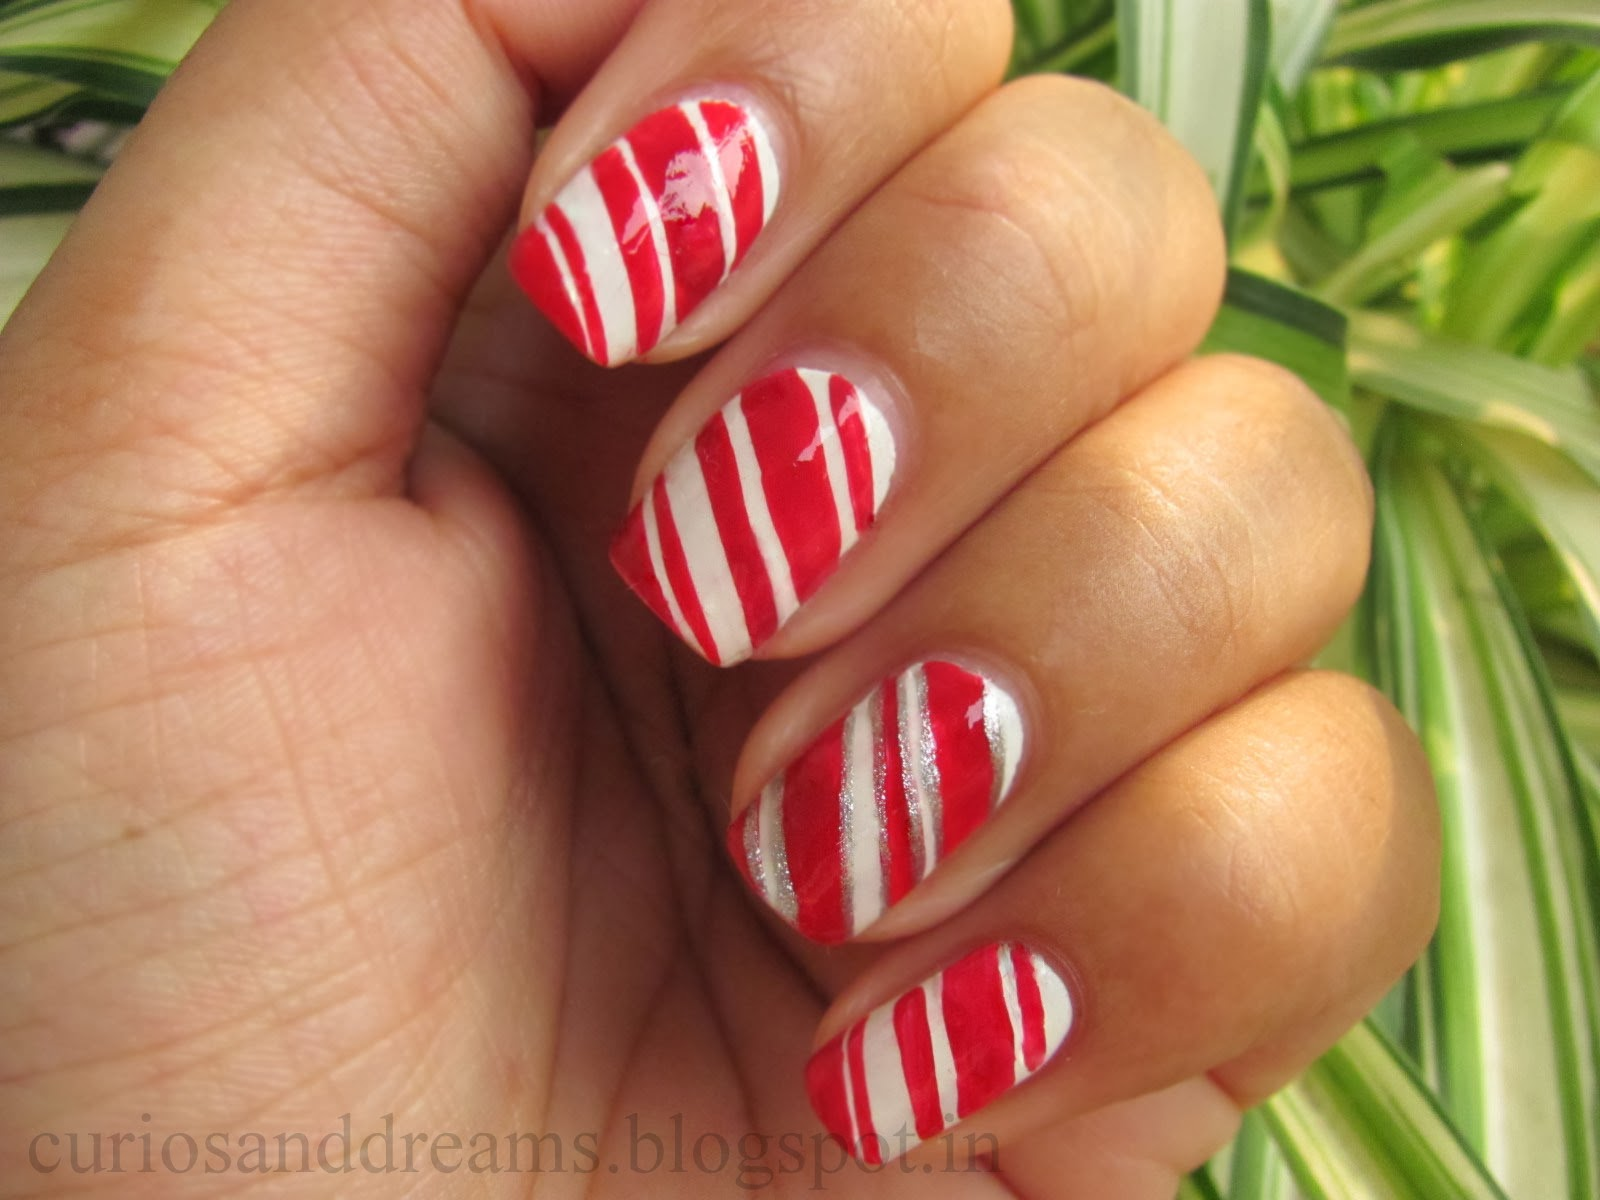 Chirstmas Nail Art designs, Candy cane nail art